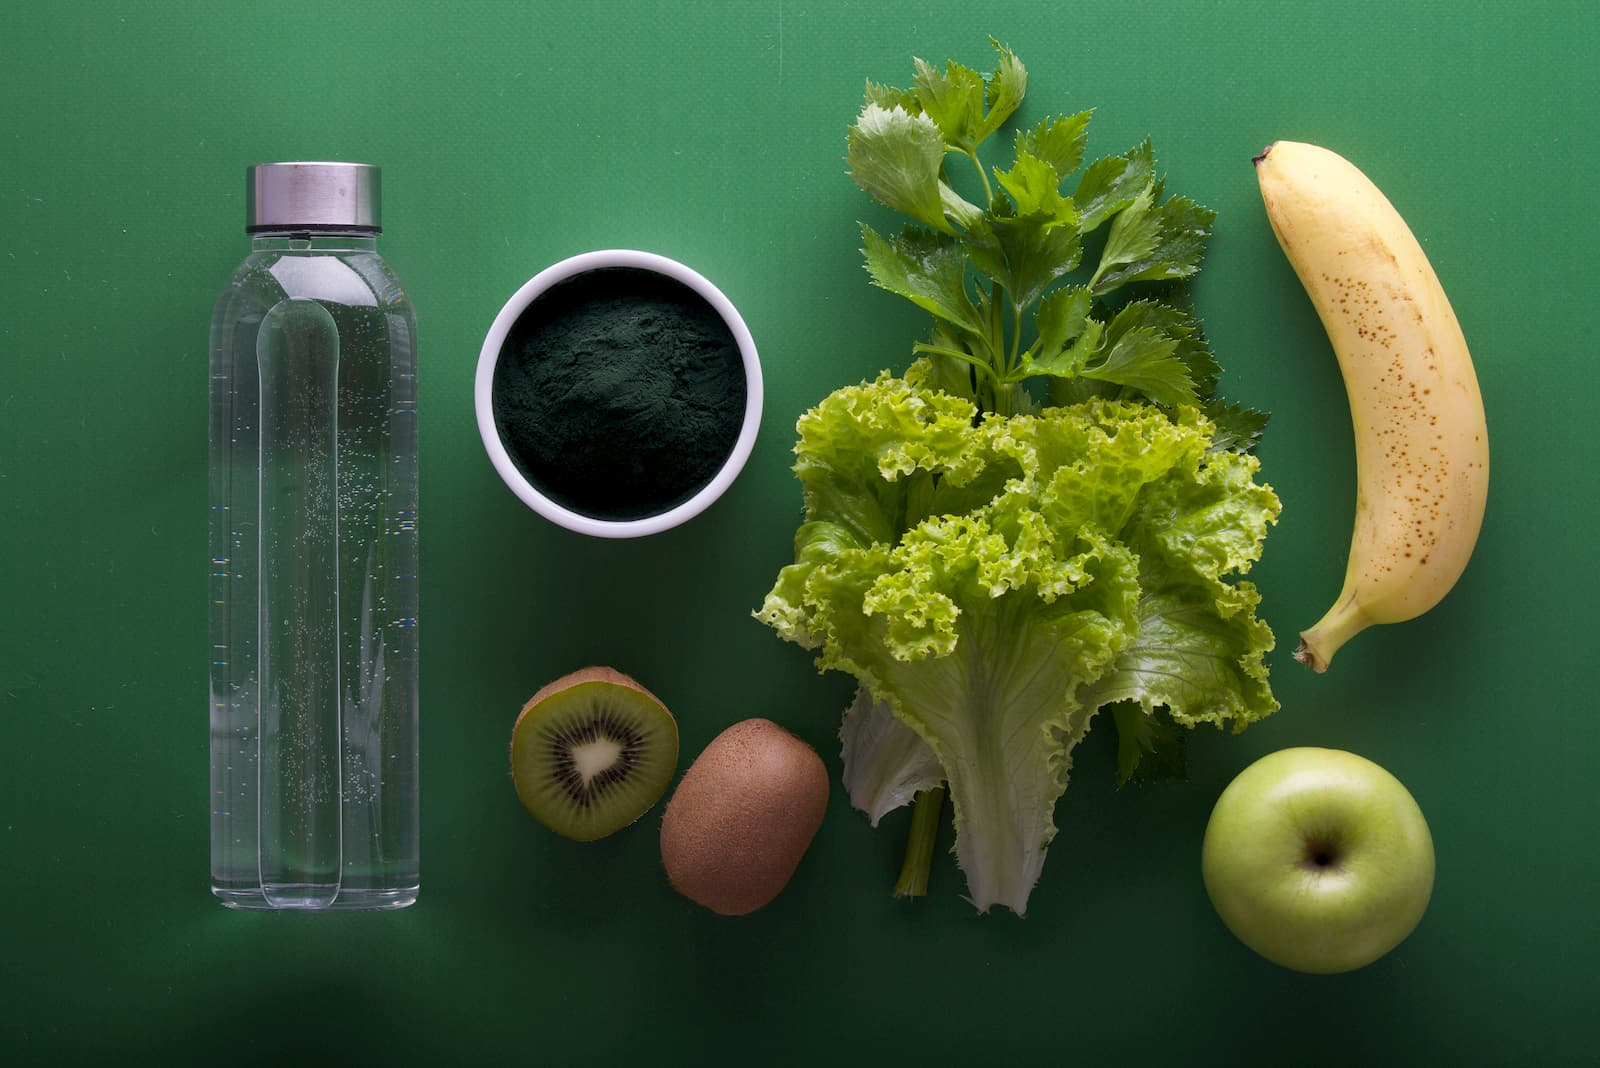 healthy food to body